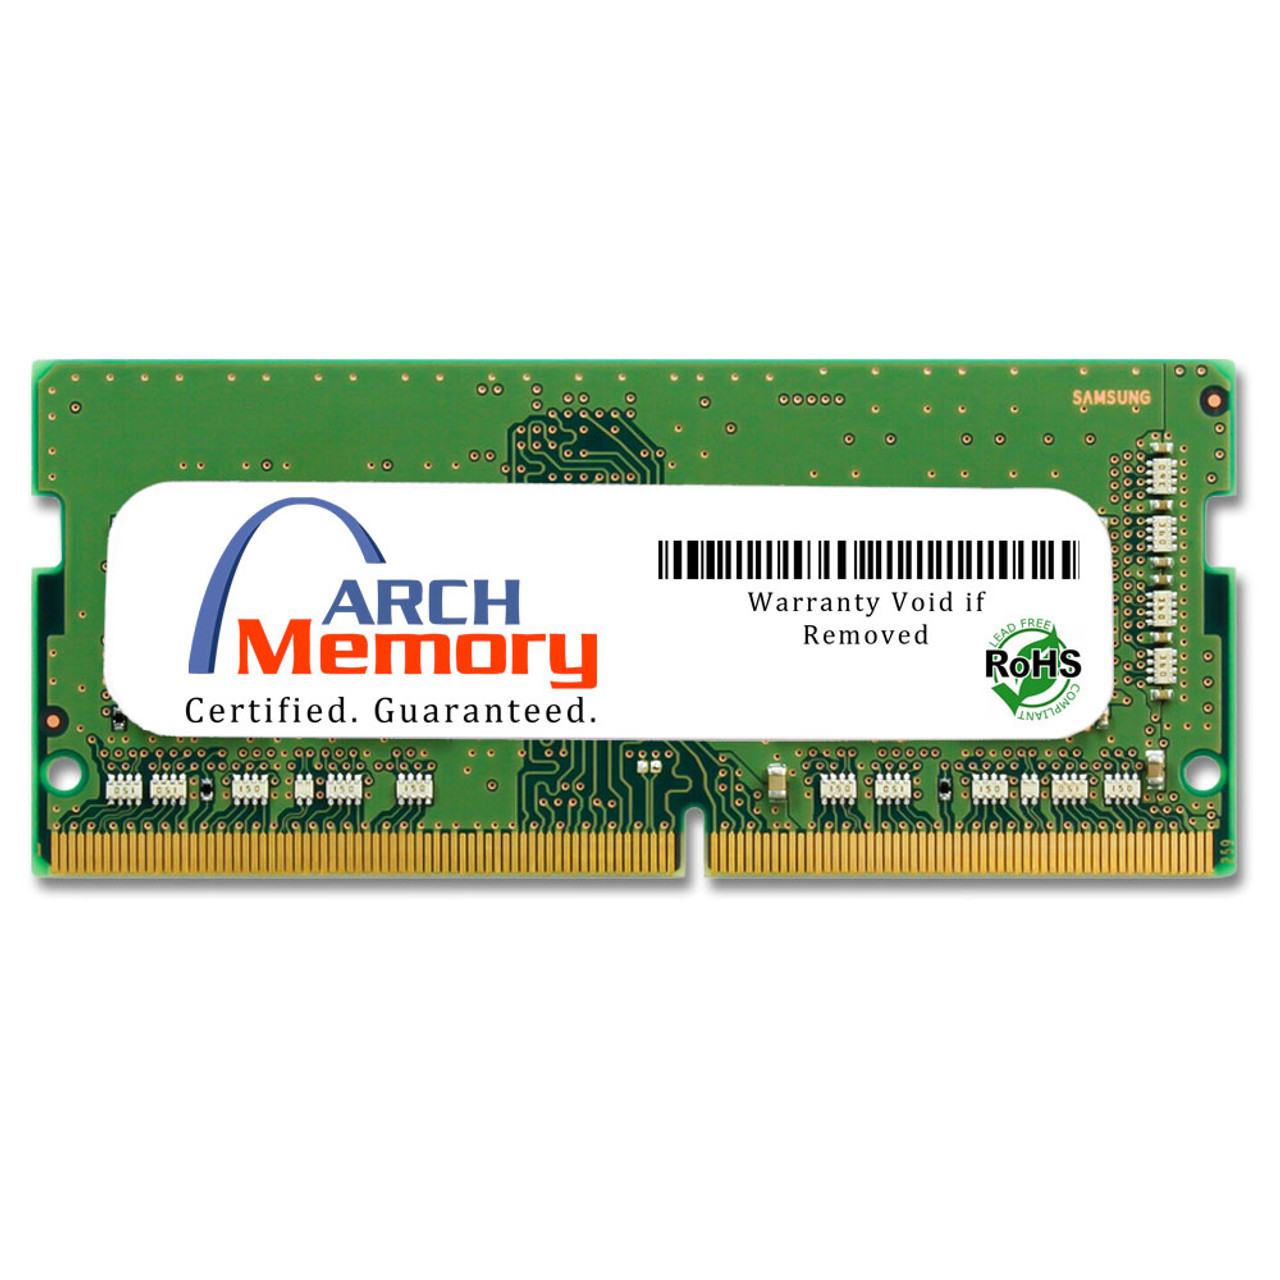 8GB DDR4-2400 PC4-12900 260 Pin Sodimm RAM Memory